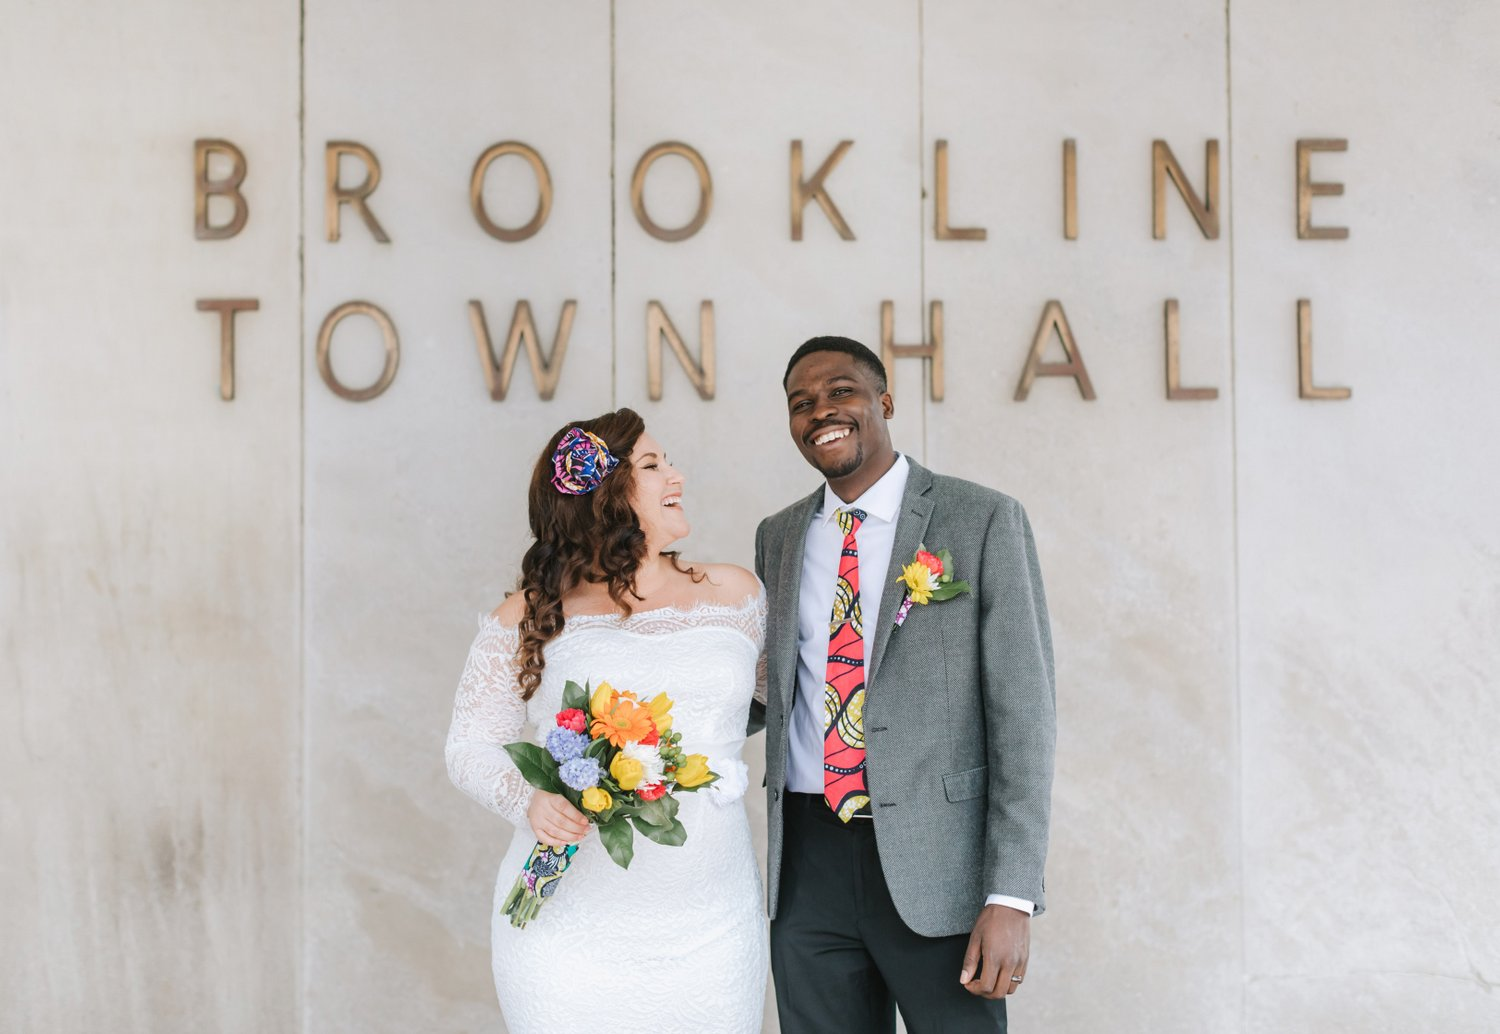 Zambian-African-Boston-Brookline-City-Hall-Wedding-3.jpg